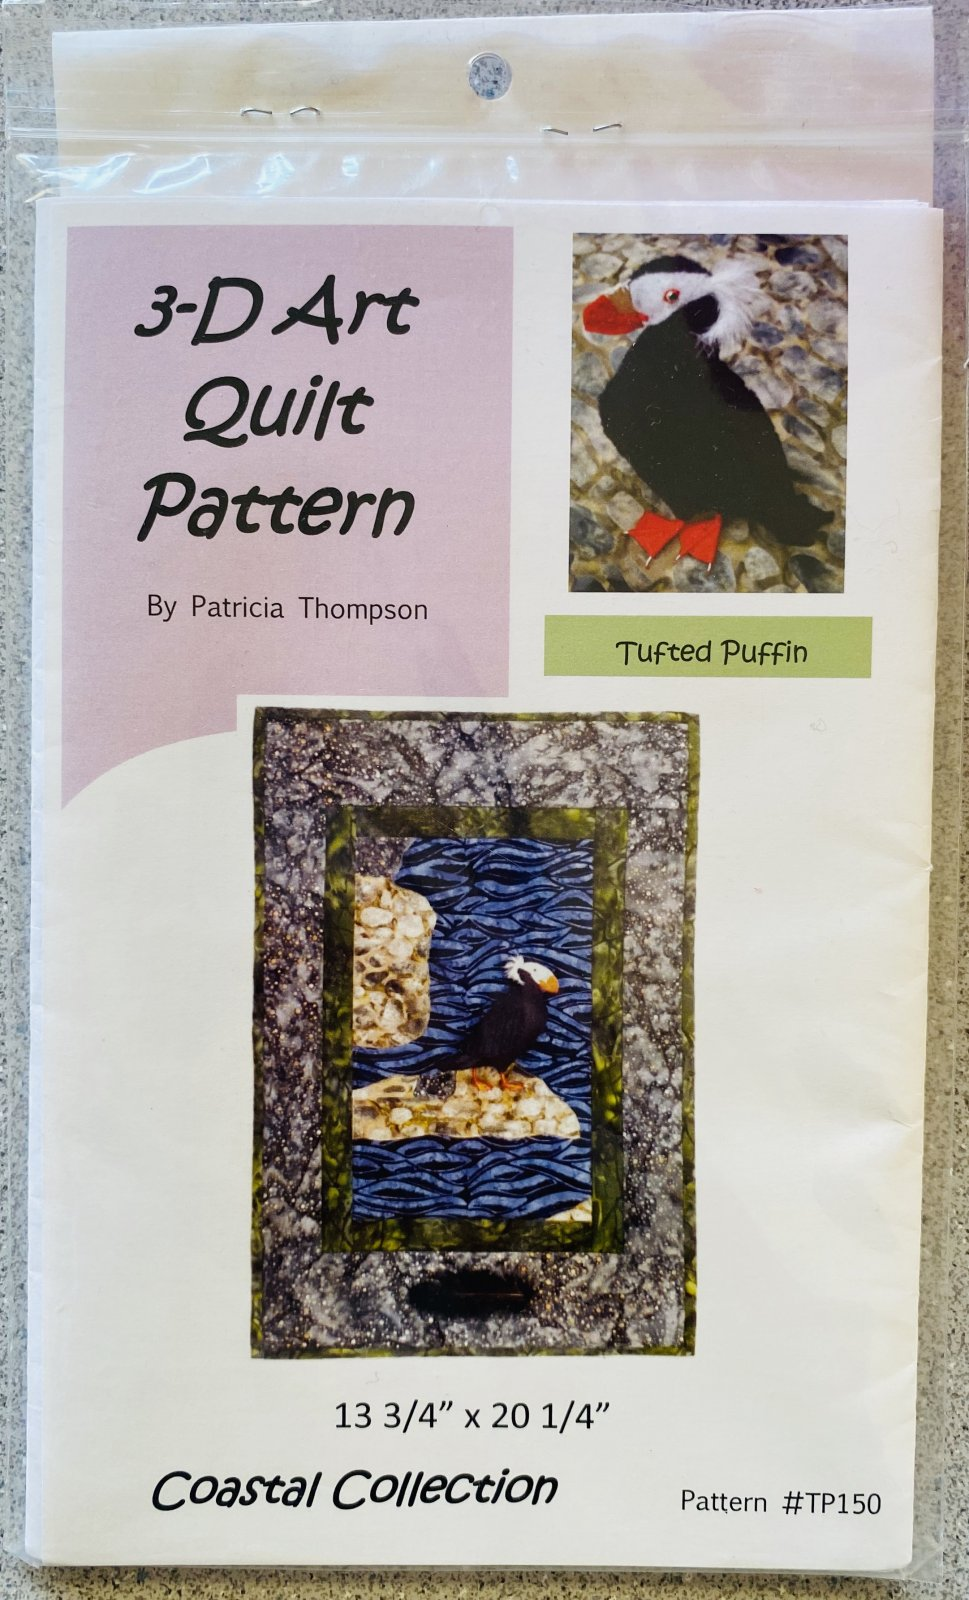 Coastal Collection Tufted Puffin Kit